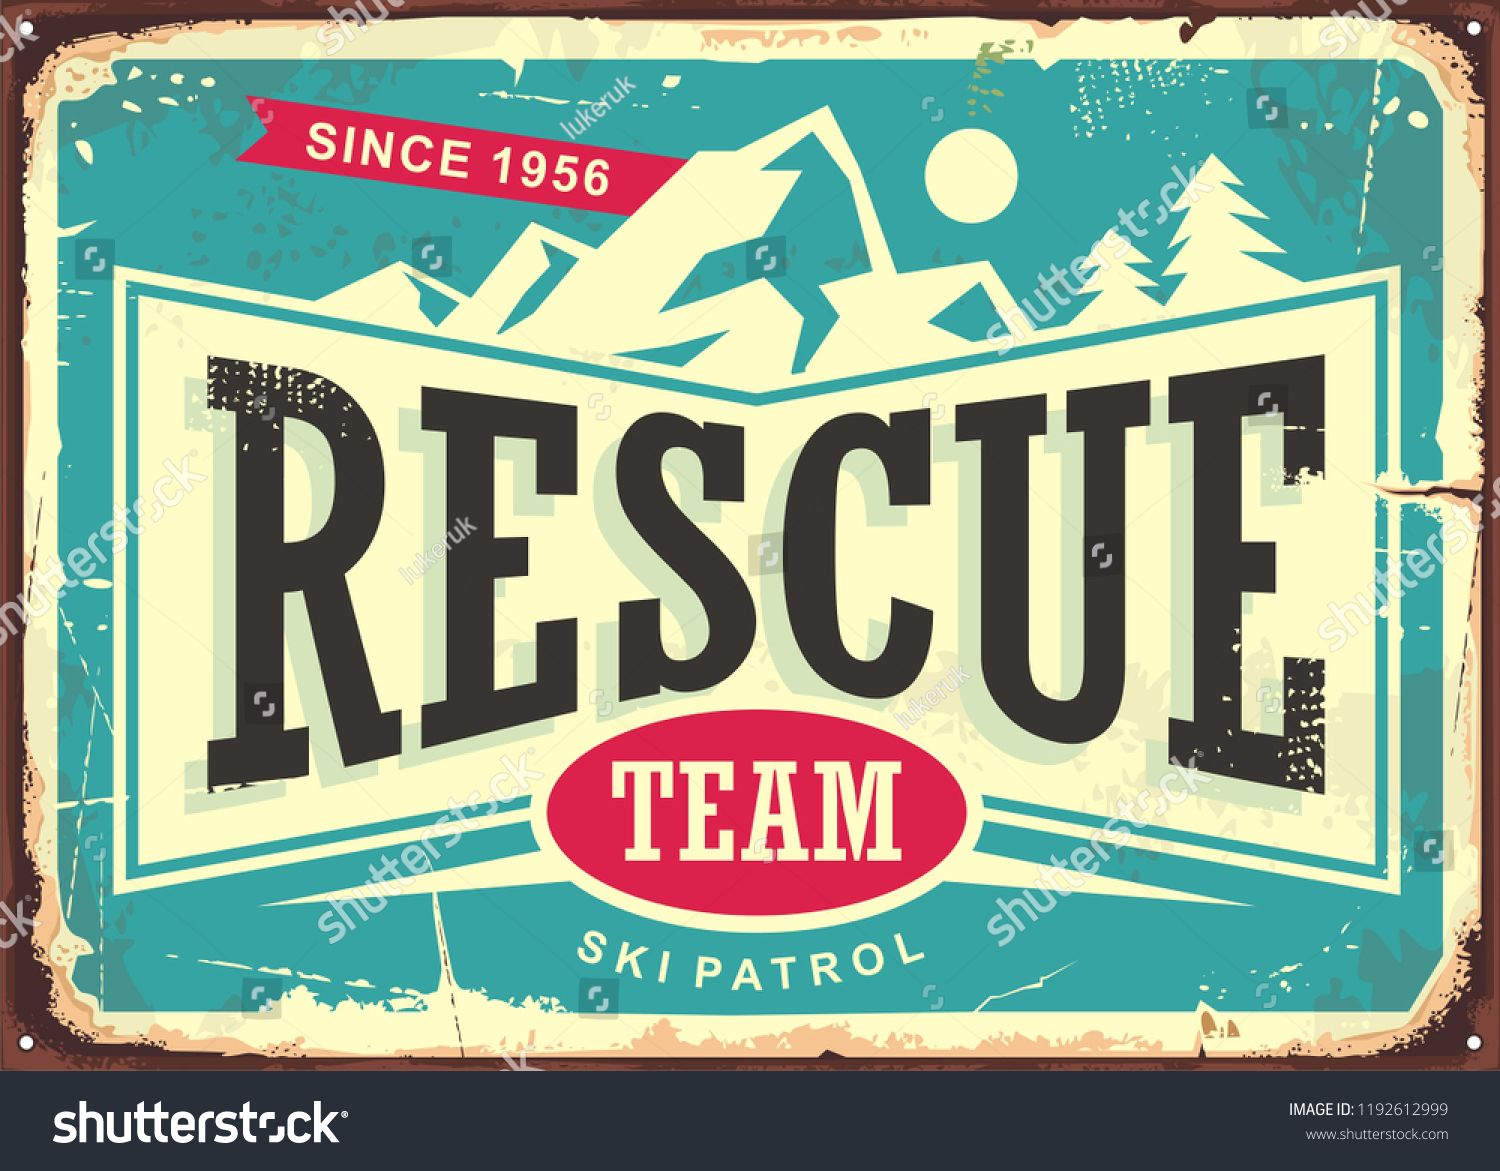 Rescue team vintage old sign for ski patrol. Retro poster for first aid service on mountain ski trails. Vector illustration. ,